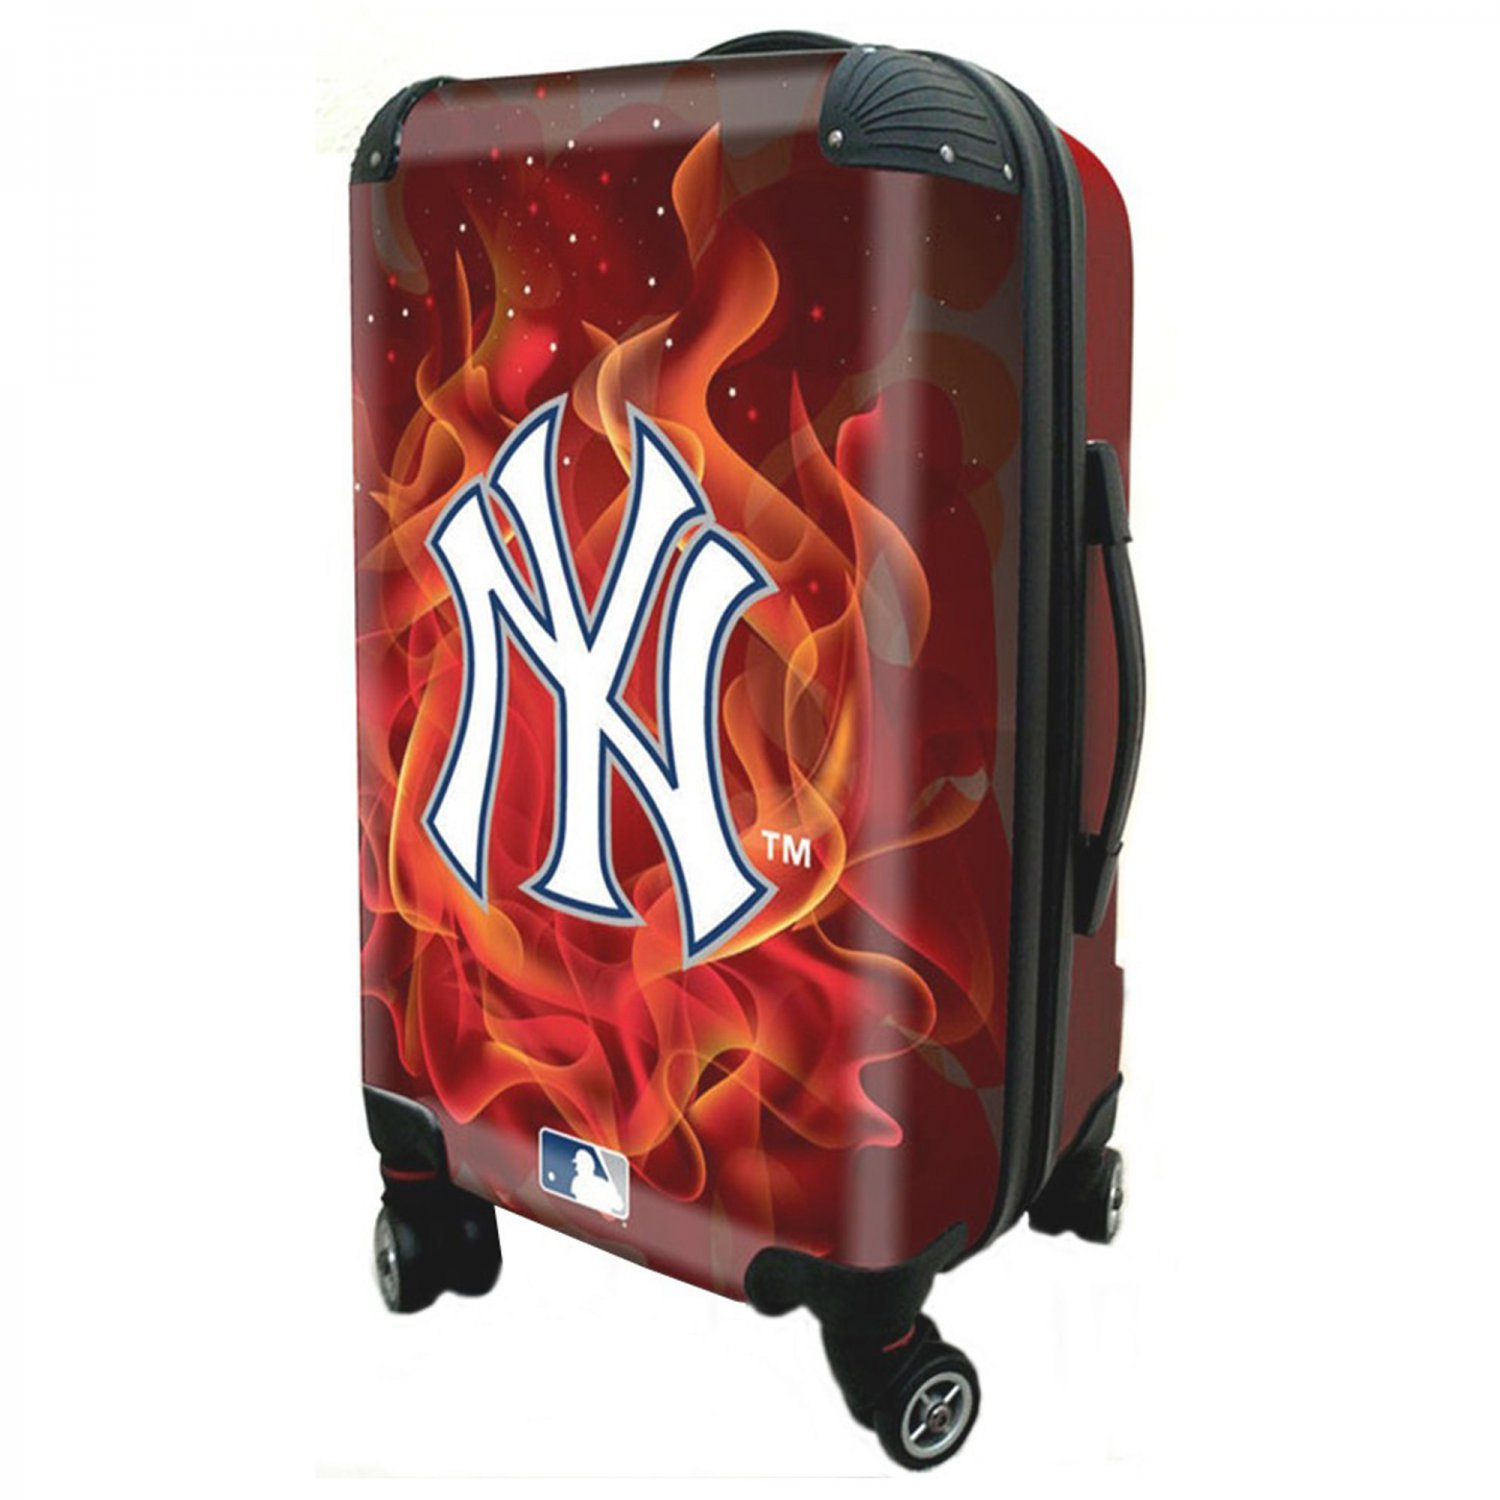 """New York Yankees, 21"""" Clear Poly Carry-On Luggage by Kaybull #NYY16"""